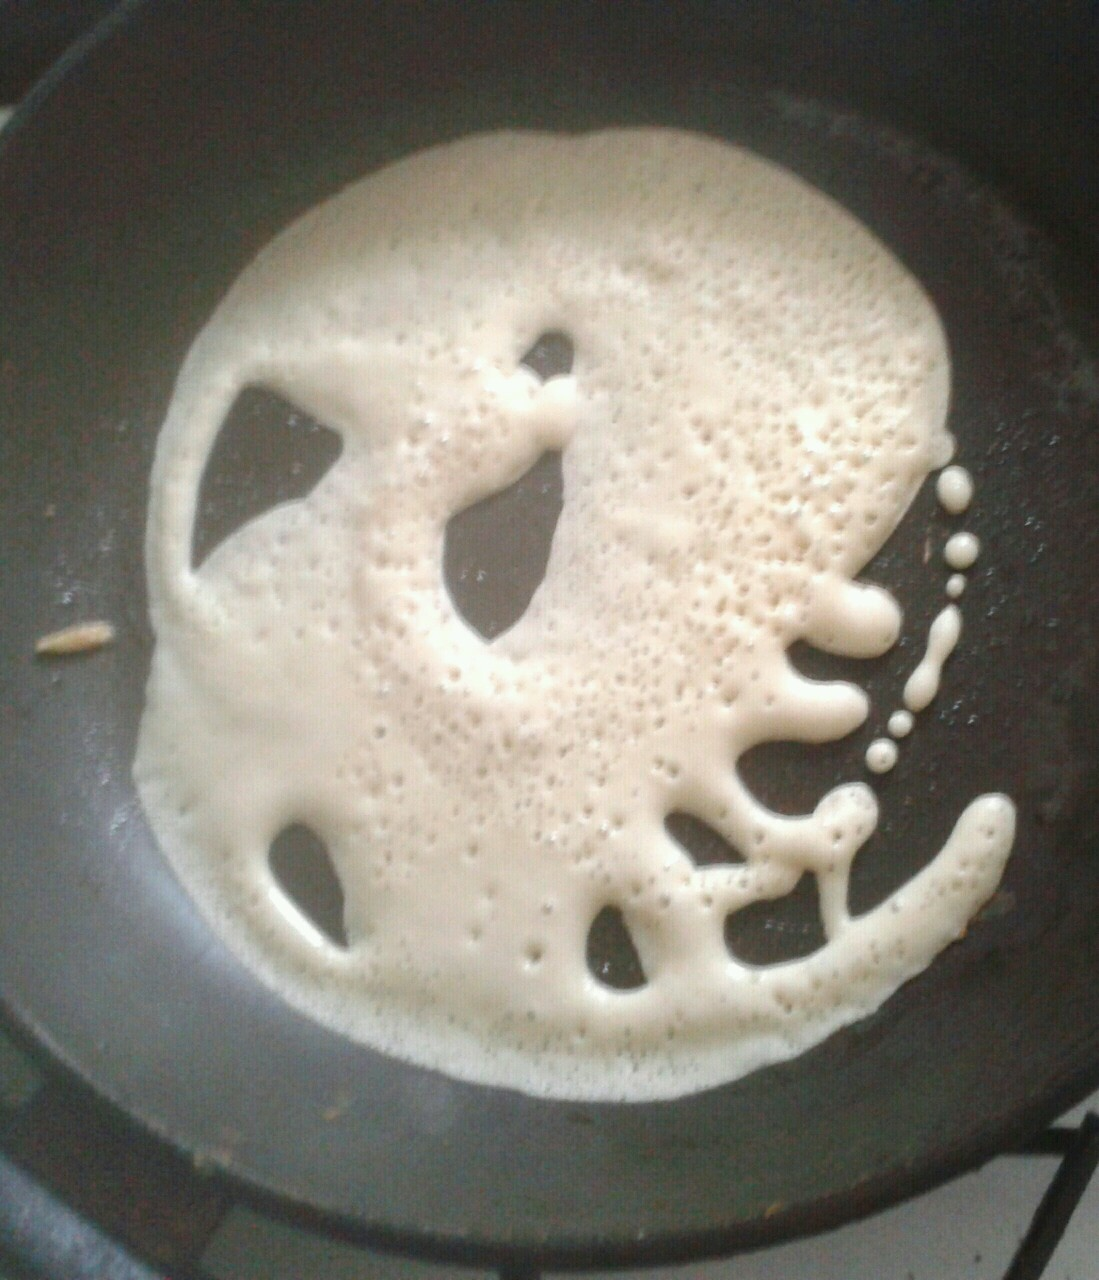 Some people see Jesus in their food, I see Cthulhu